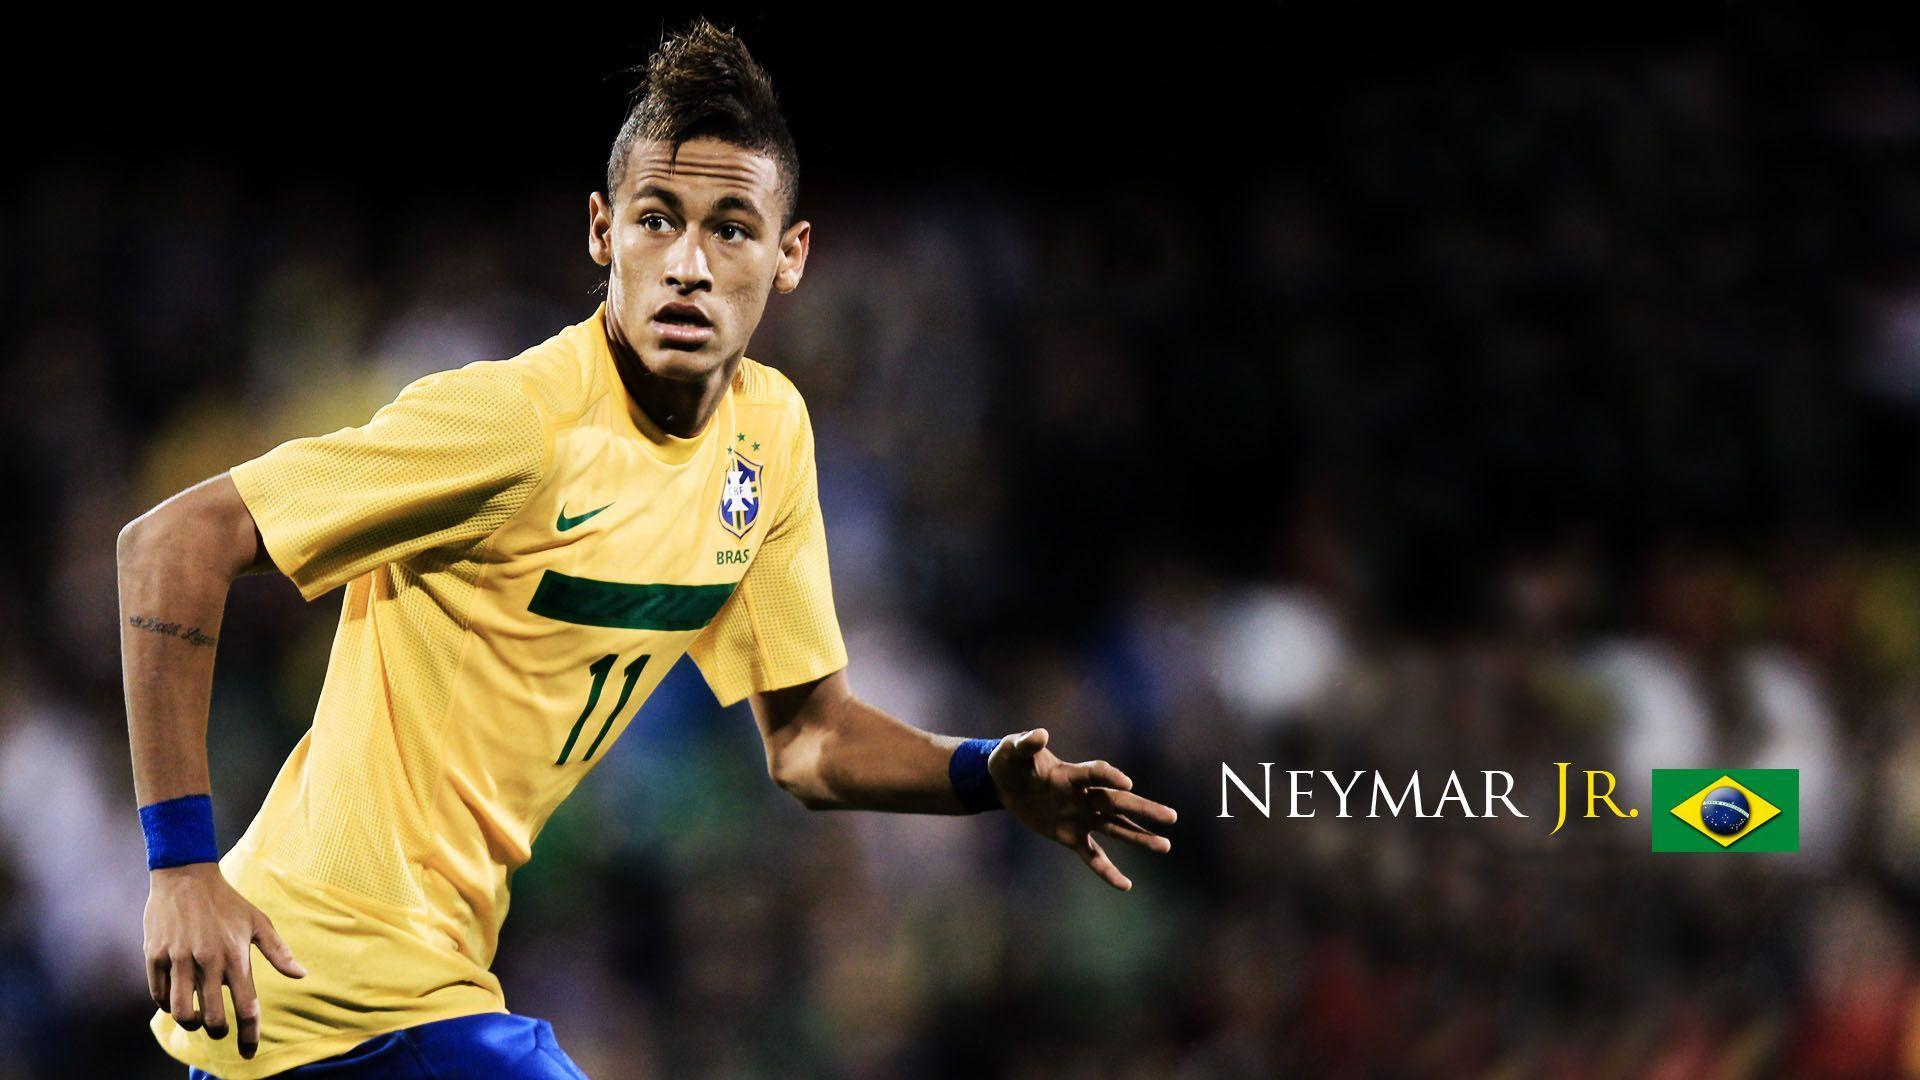 Neymar Wallpapers HD | HD Wallpapers, Backgrounds, Images, Art Photos.